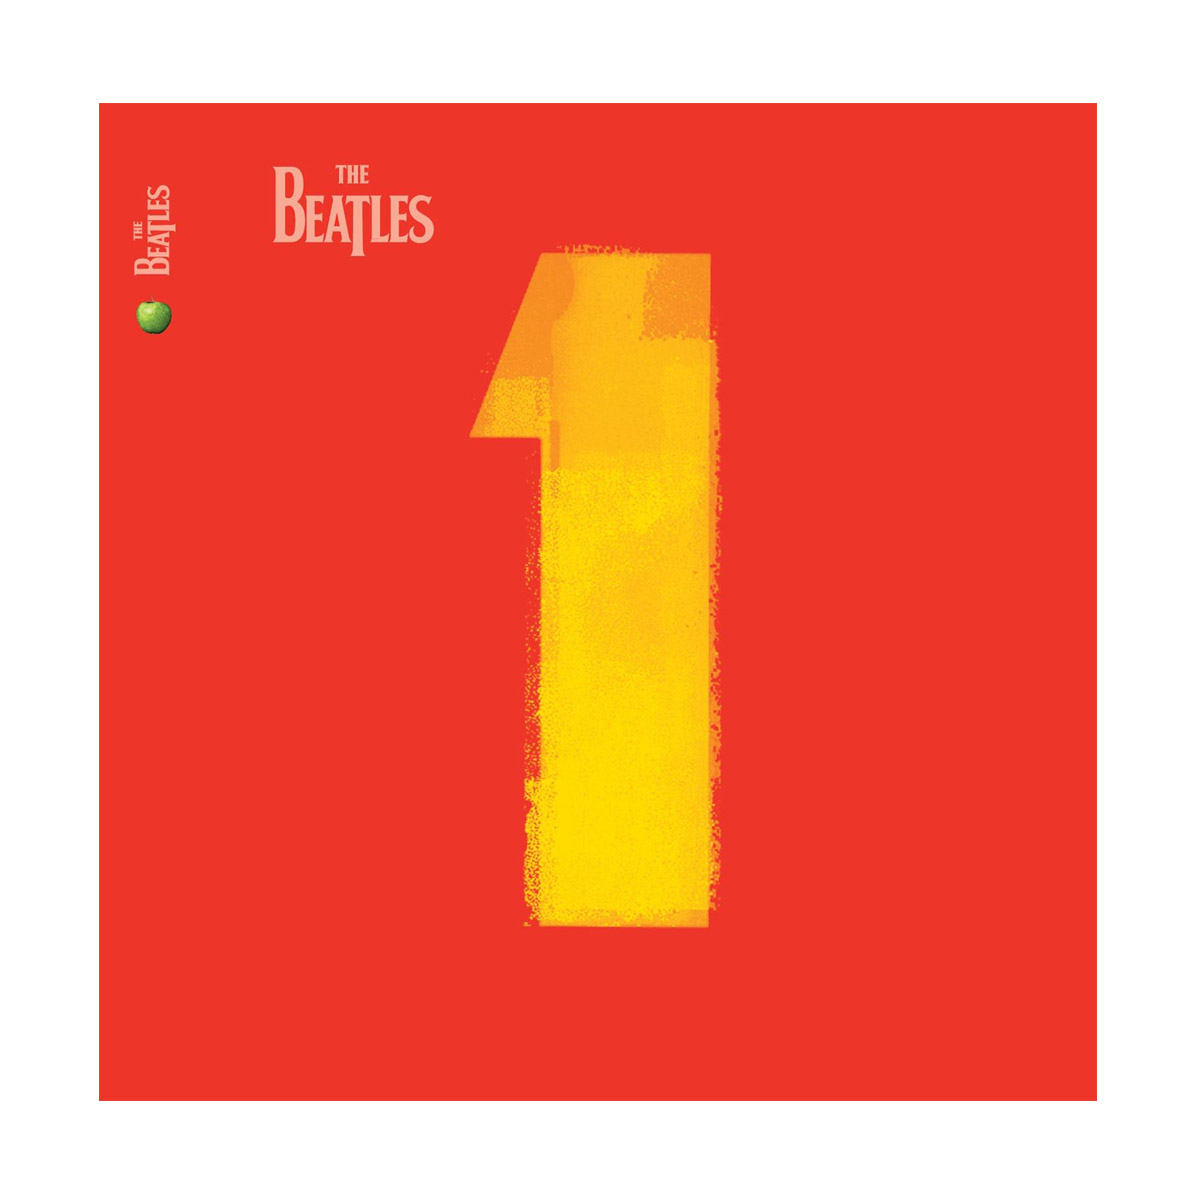 CD The Beatles 1